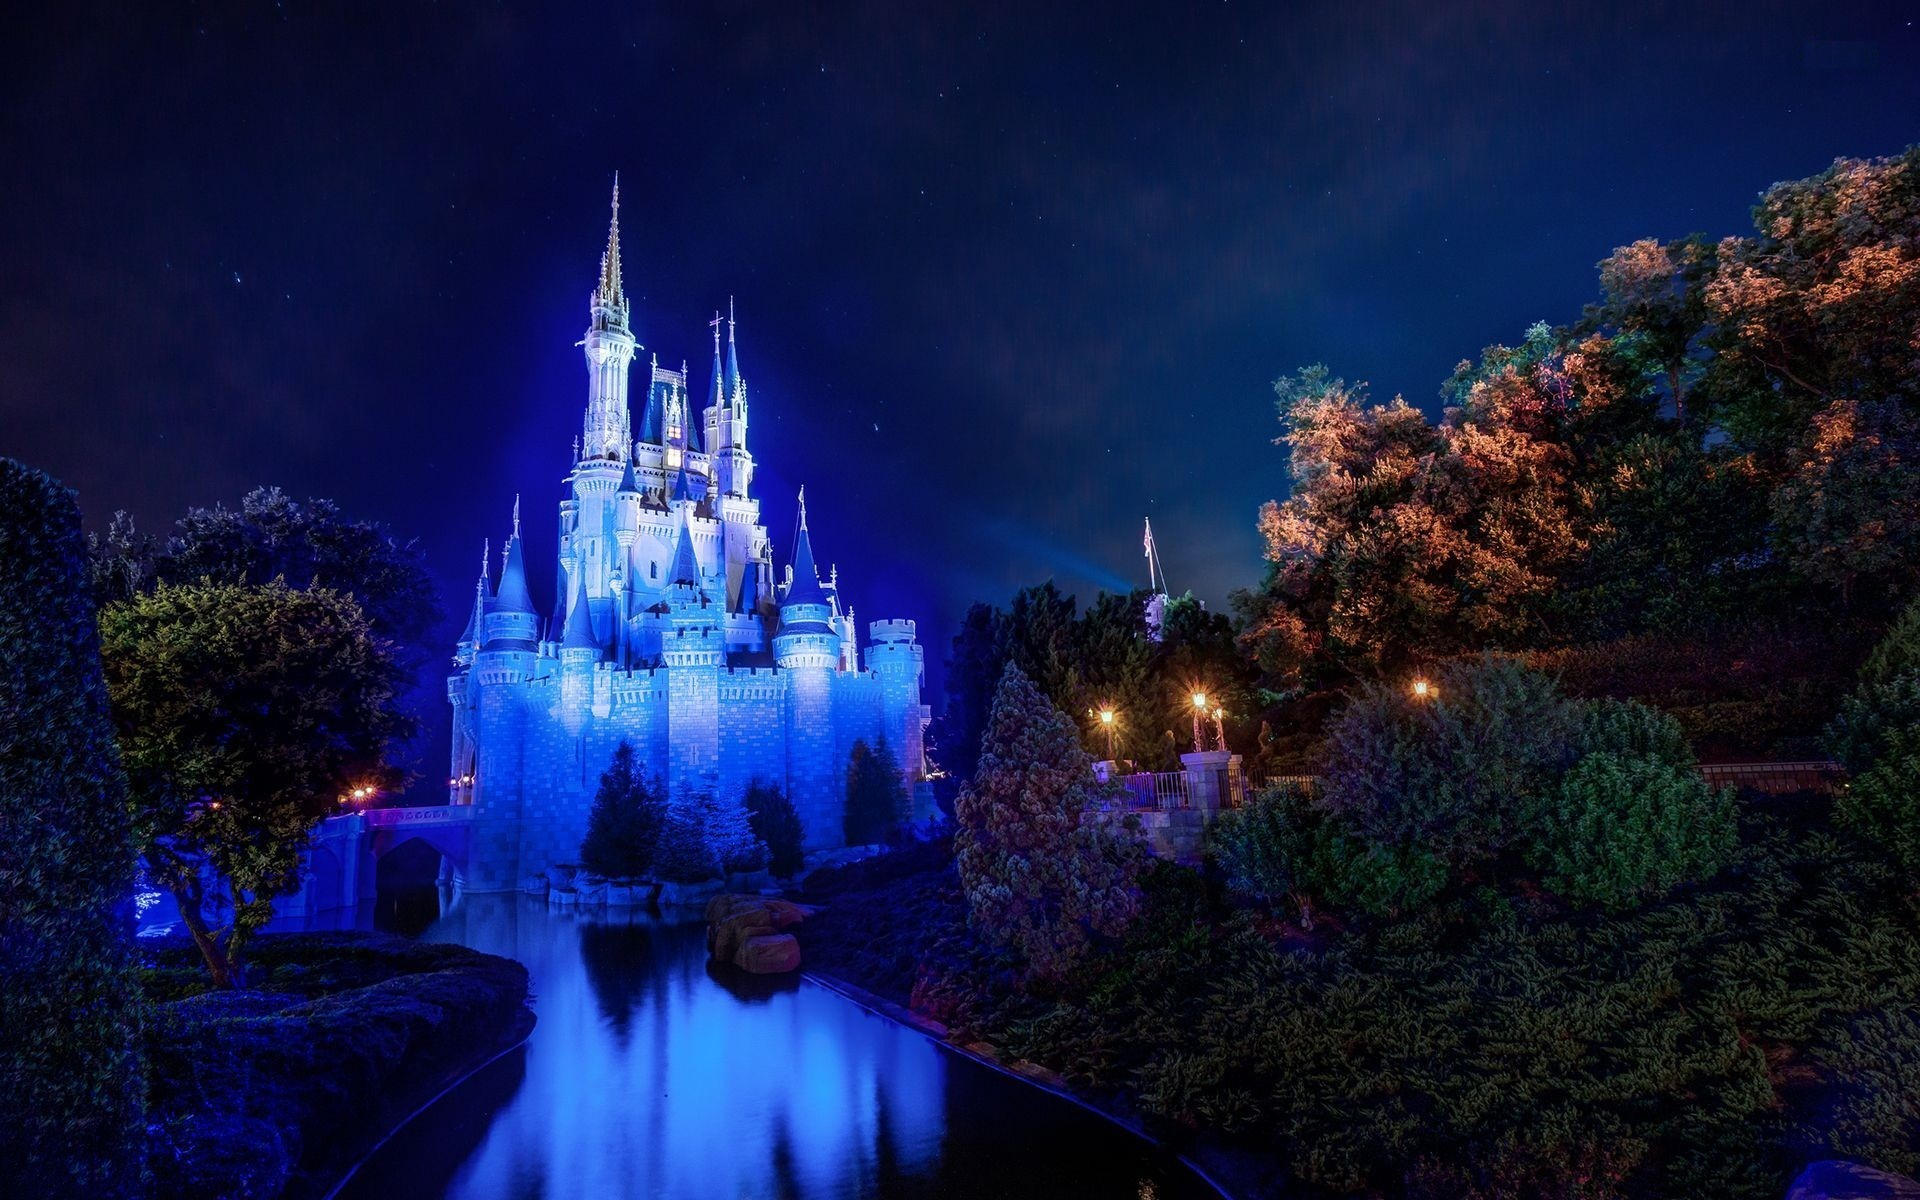 Disney World wallpaper ·① Download free backgrounds for